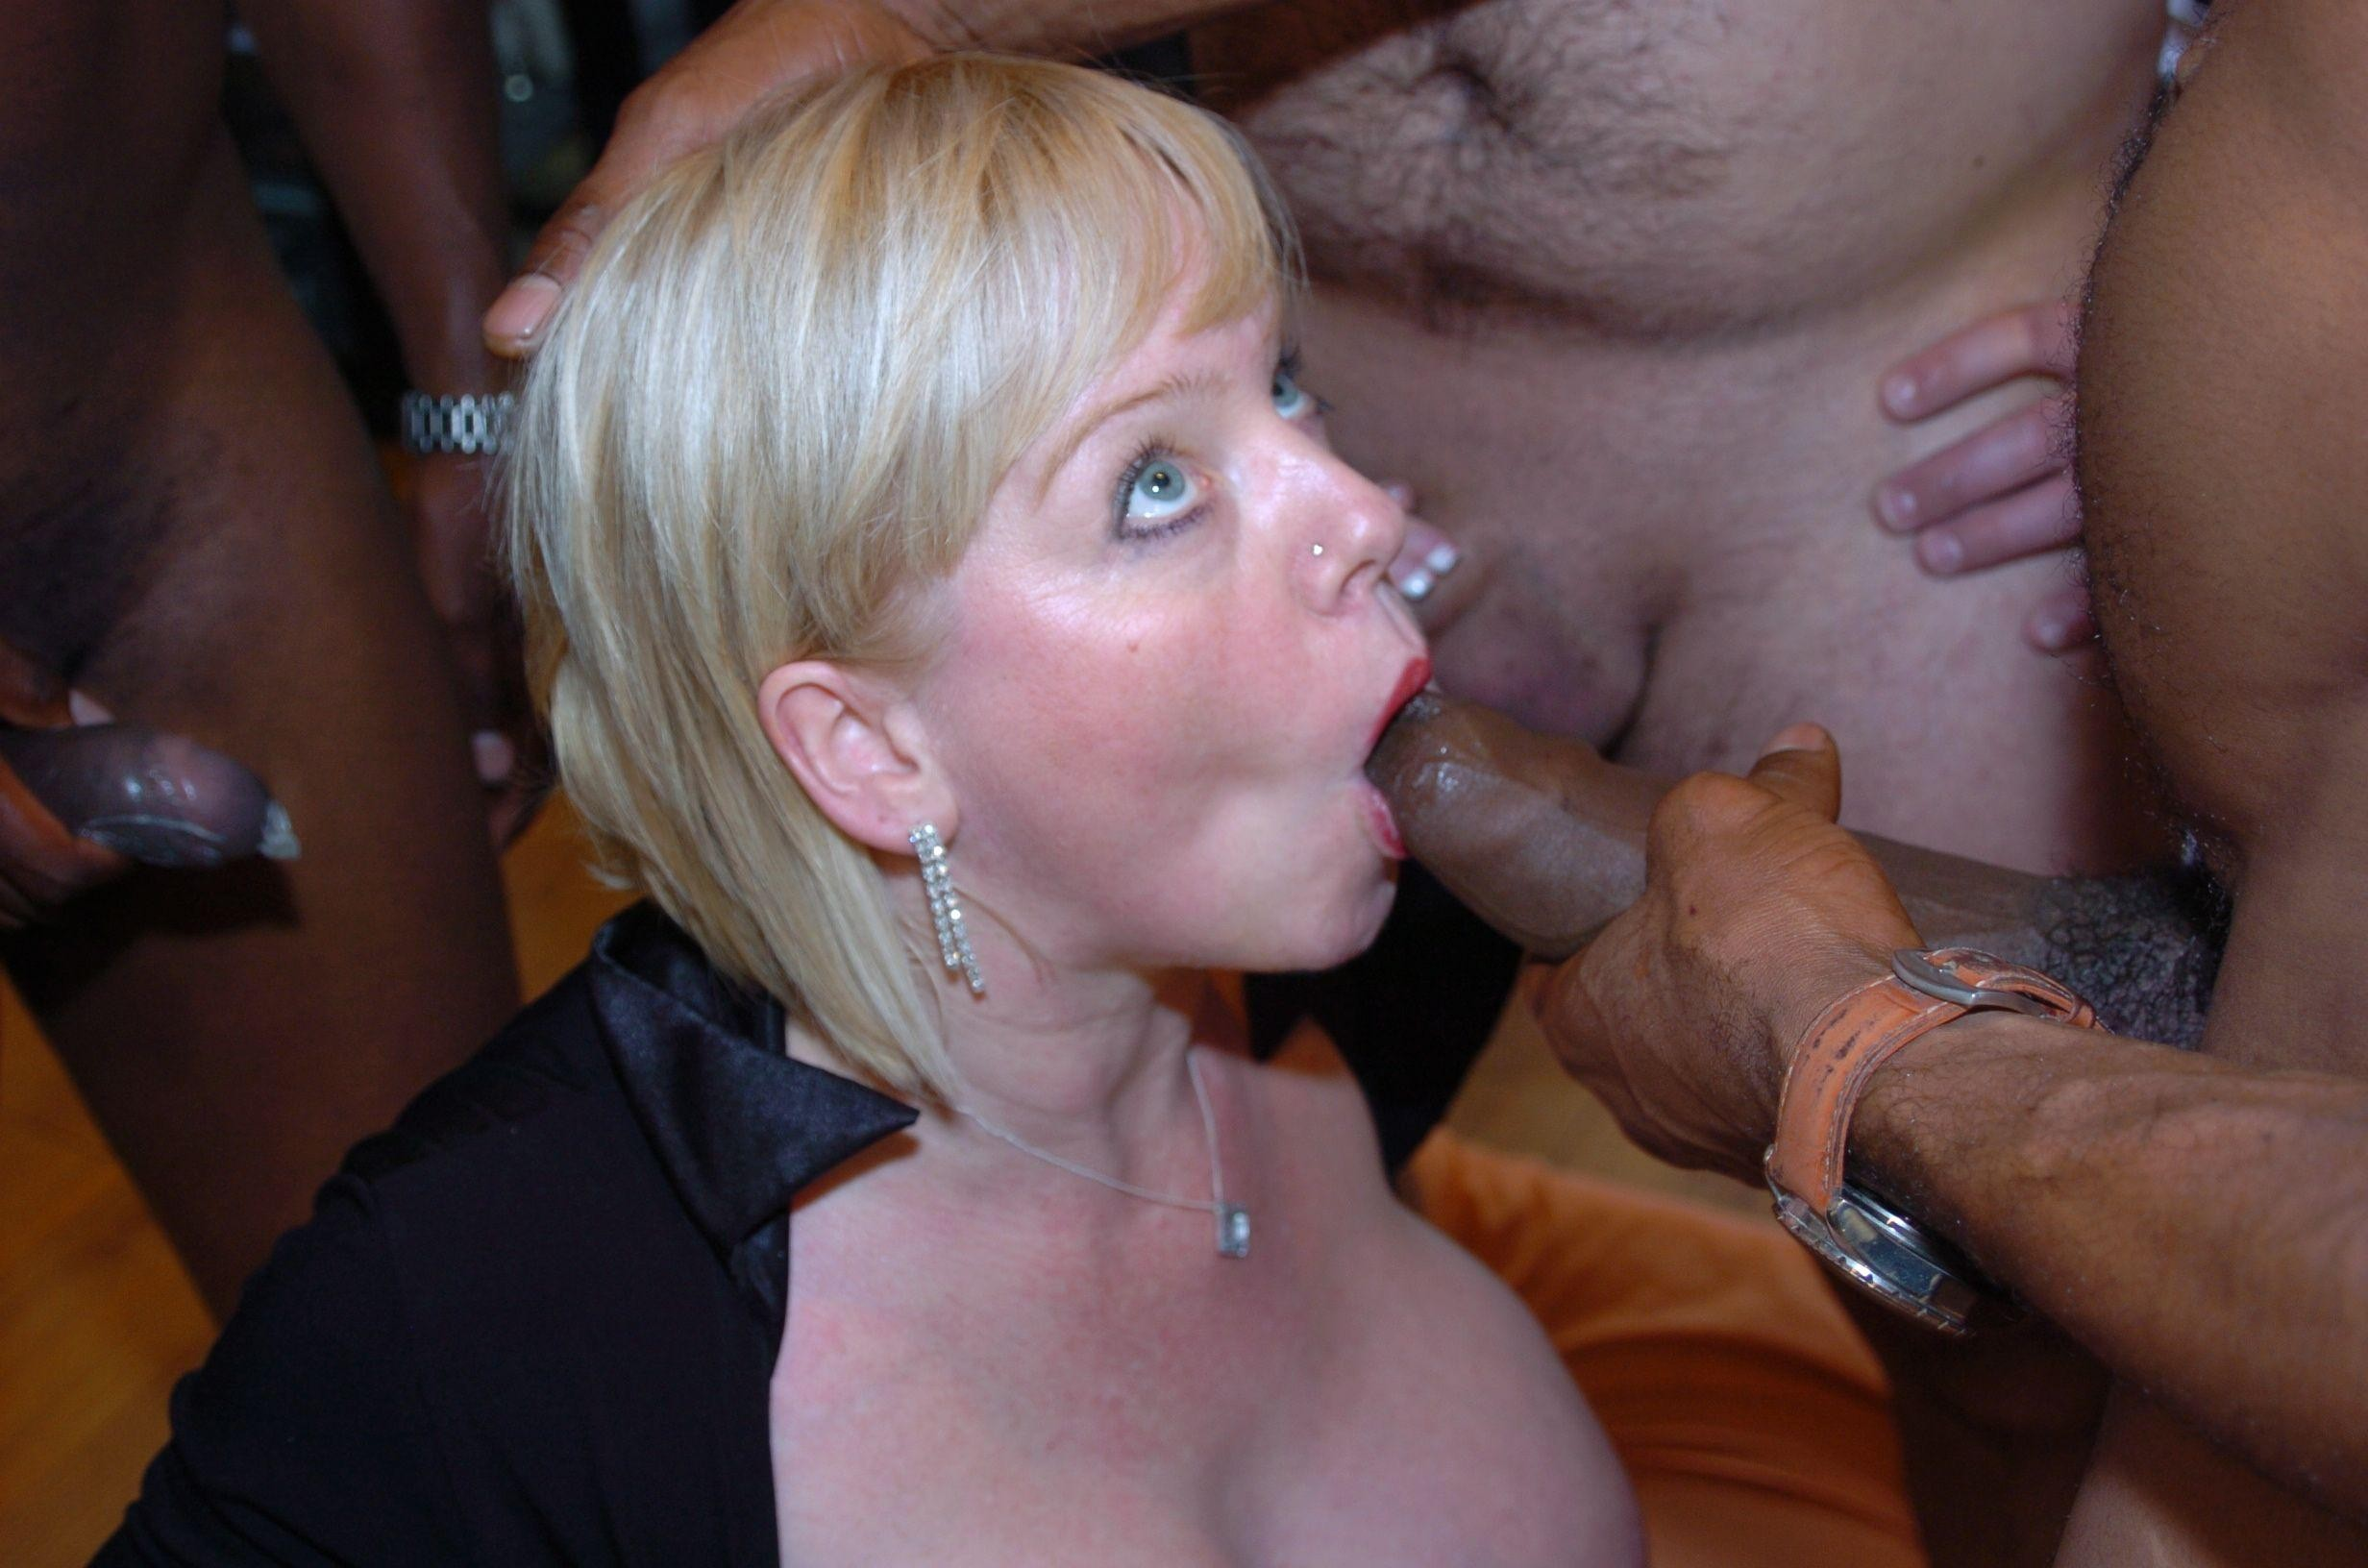 That ASS sucking big black cock these racist